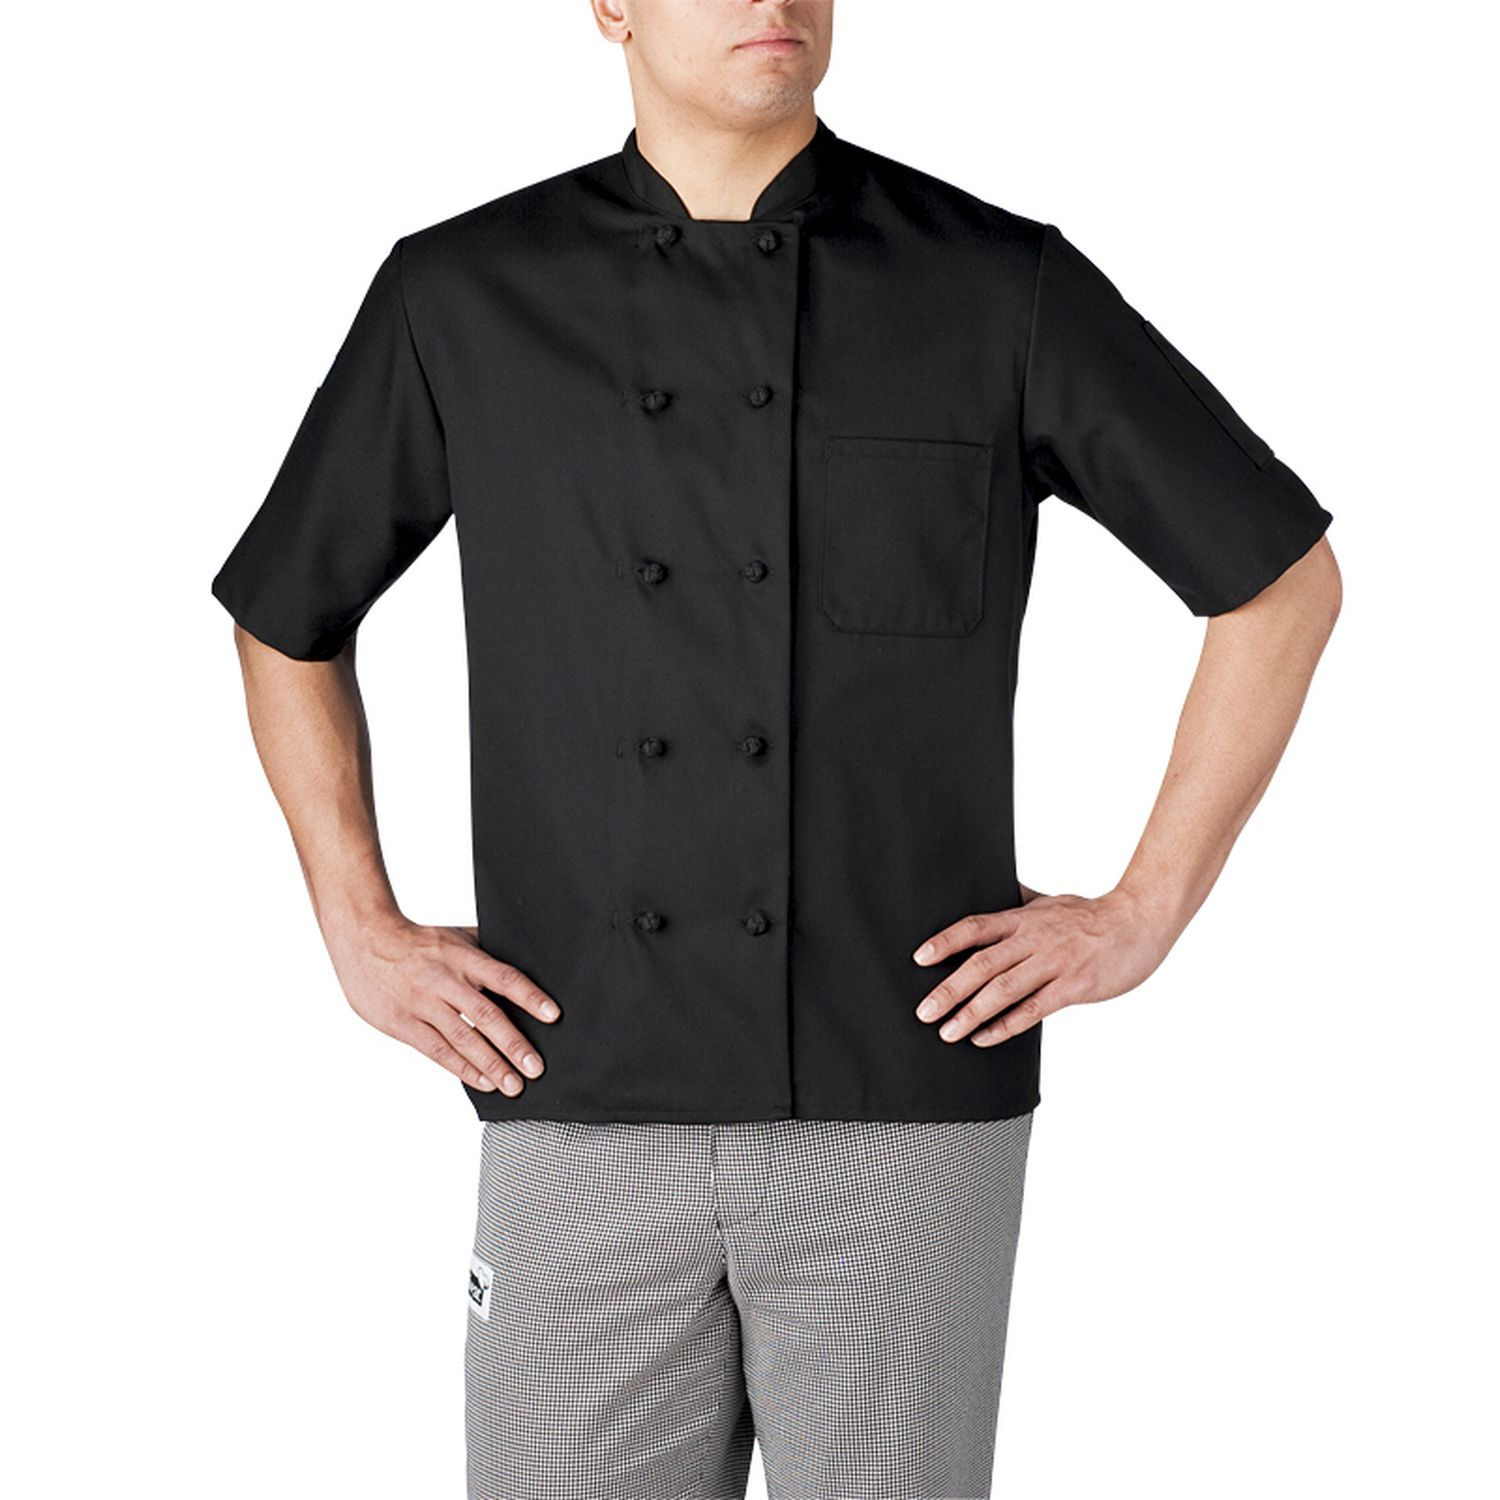 Best Seller - Chefwear (Chef Wear) Short Sleeve Primary Cloth Knot Button Jacket (4450)